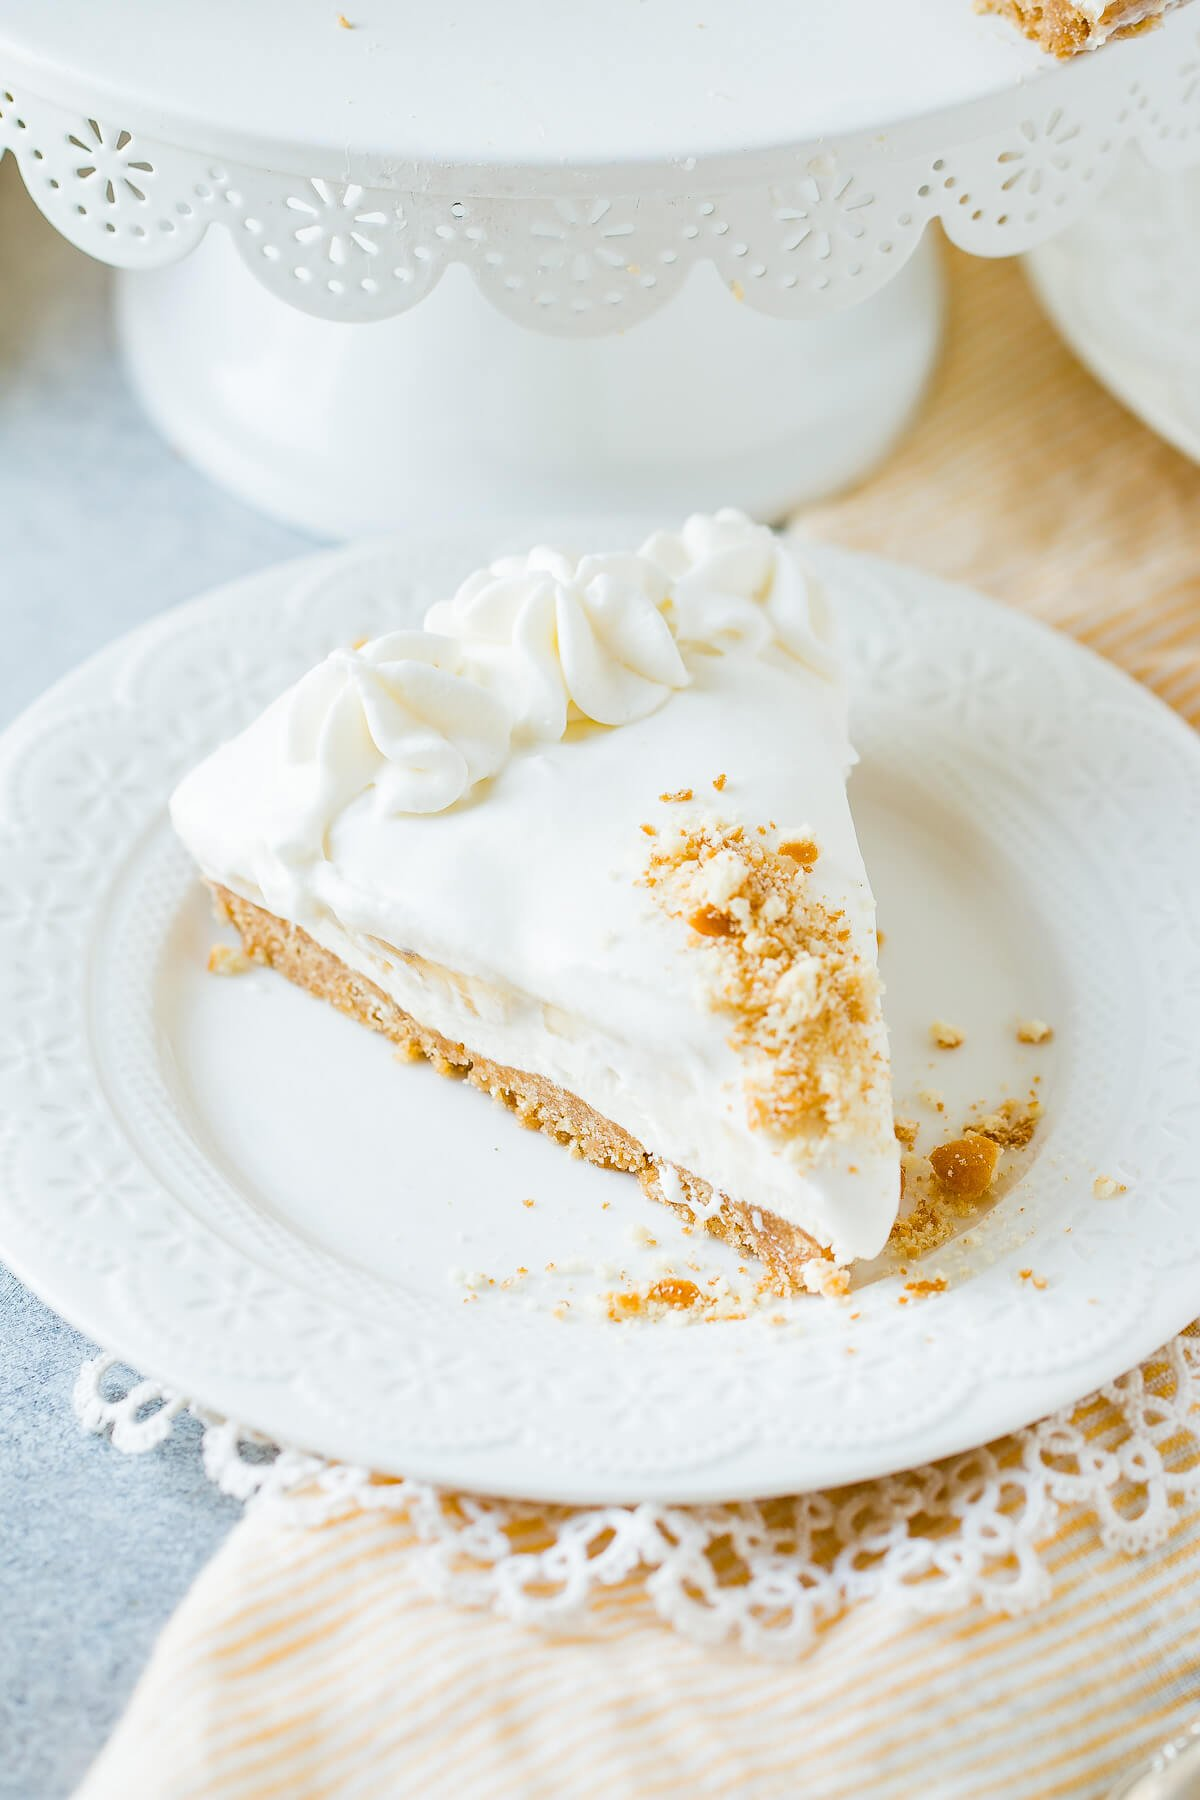 slice of no bake banana pudding cheesecake on white plate